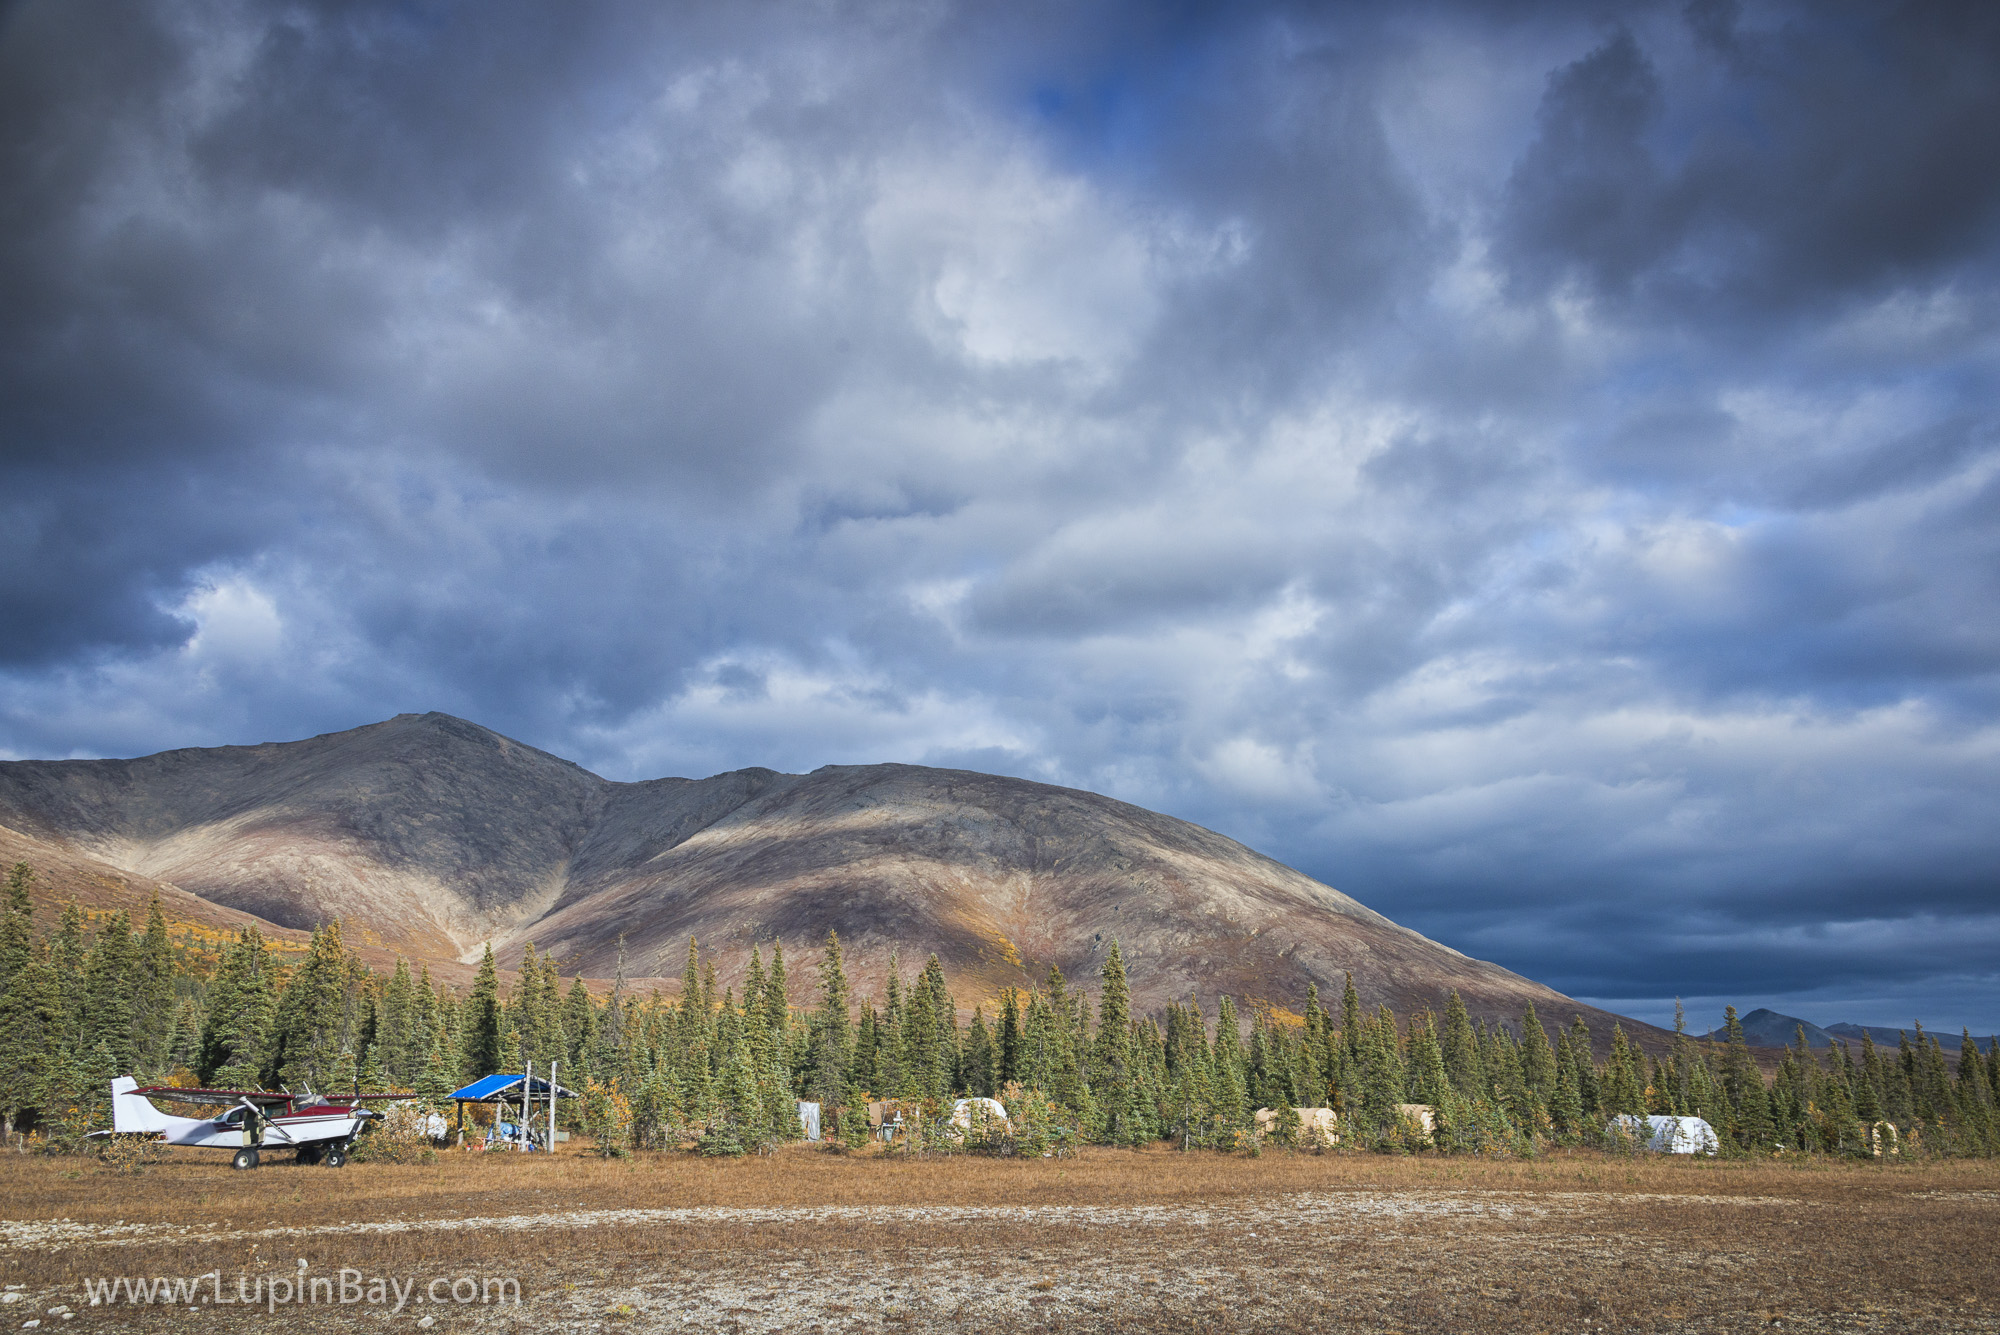 LupinBay-Alaska-Outfitters Camp-2190.jpg